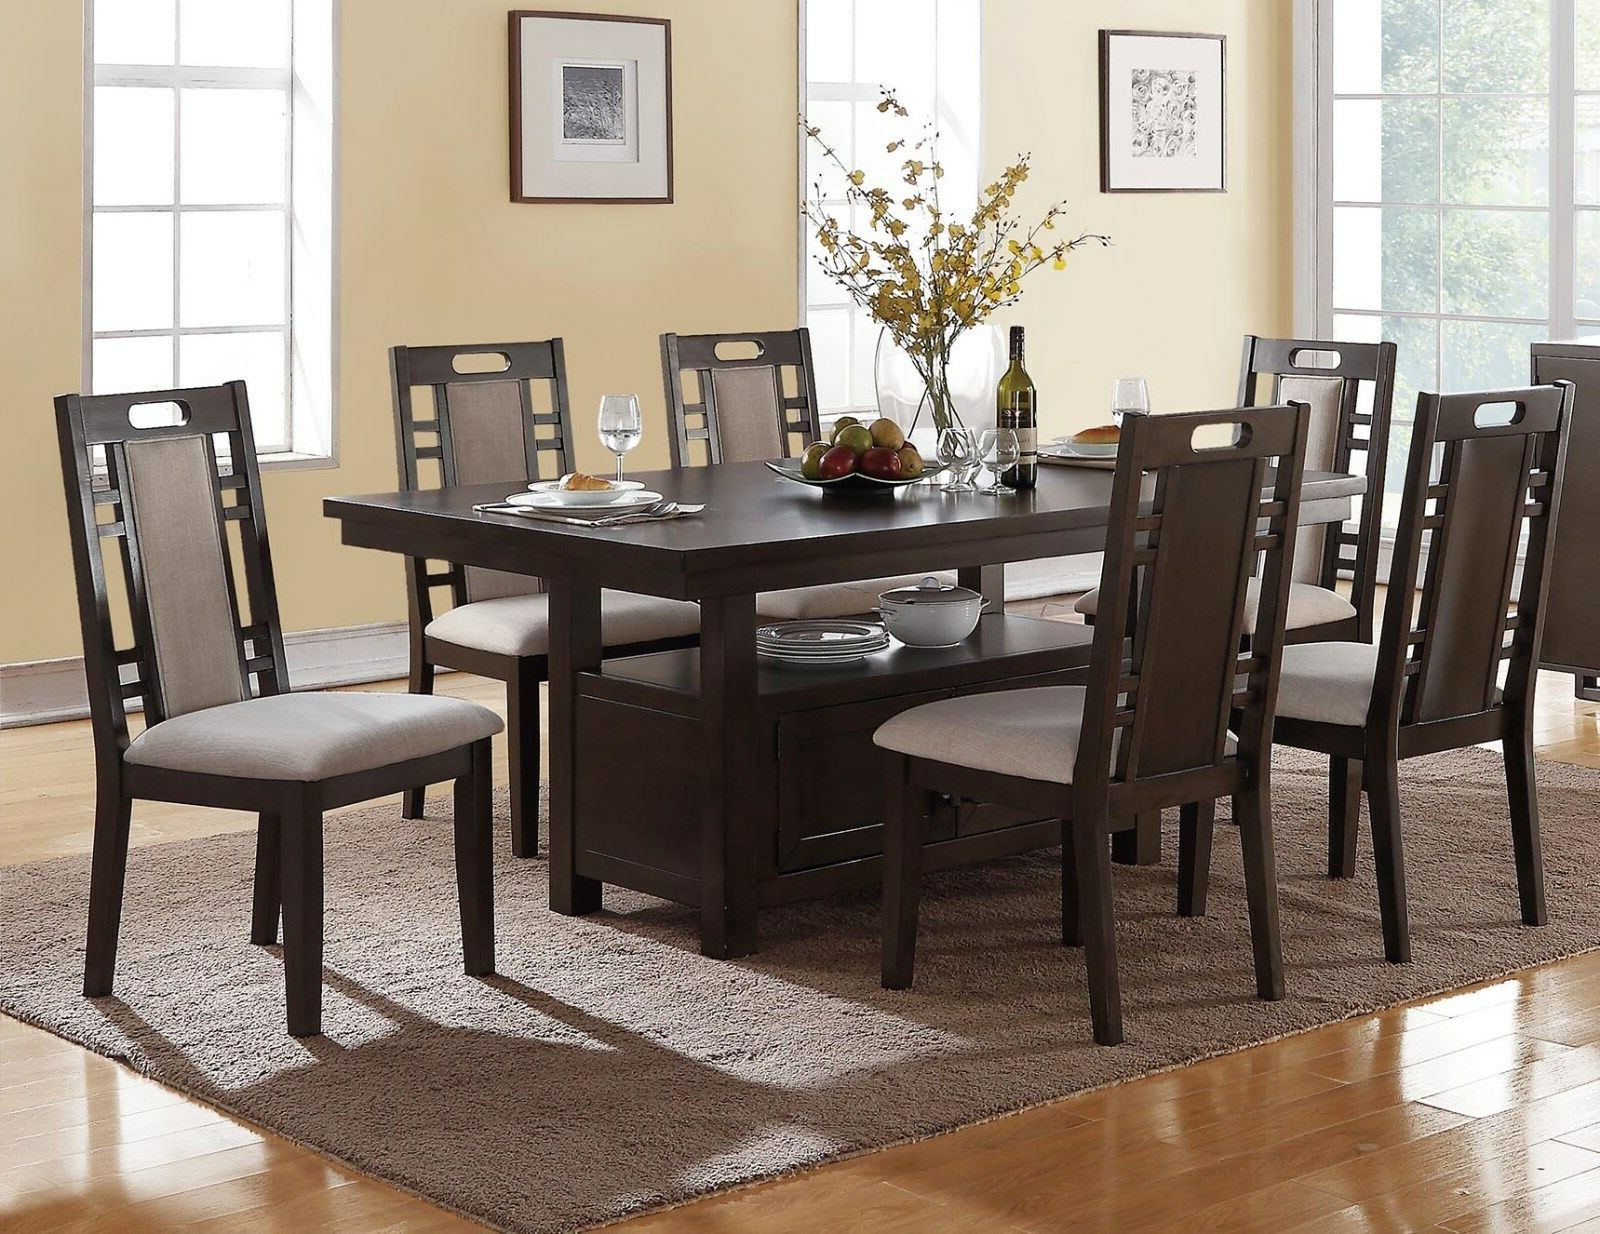 Well Liked Charcoal Transitional 6 Seating Rectangular Dining Tables In Transitional Camden 7Pc Charcoal Gray Wood Dining Table Set W/ Storage Cabinet (View 6 of 30)